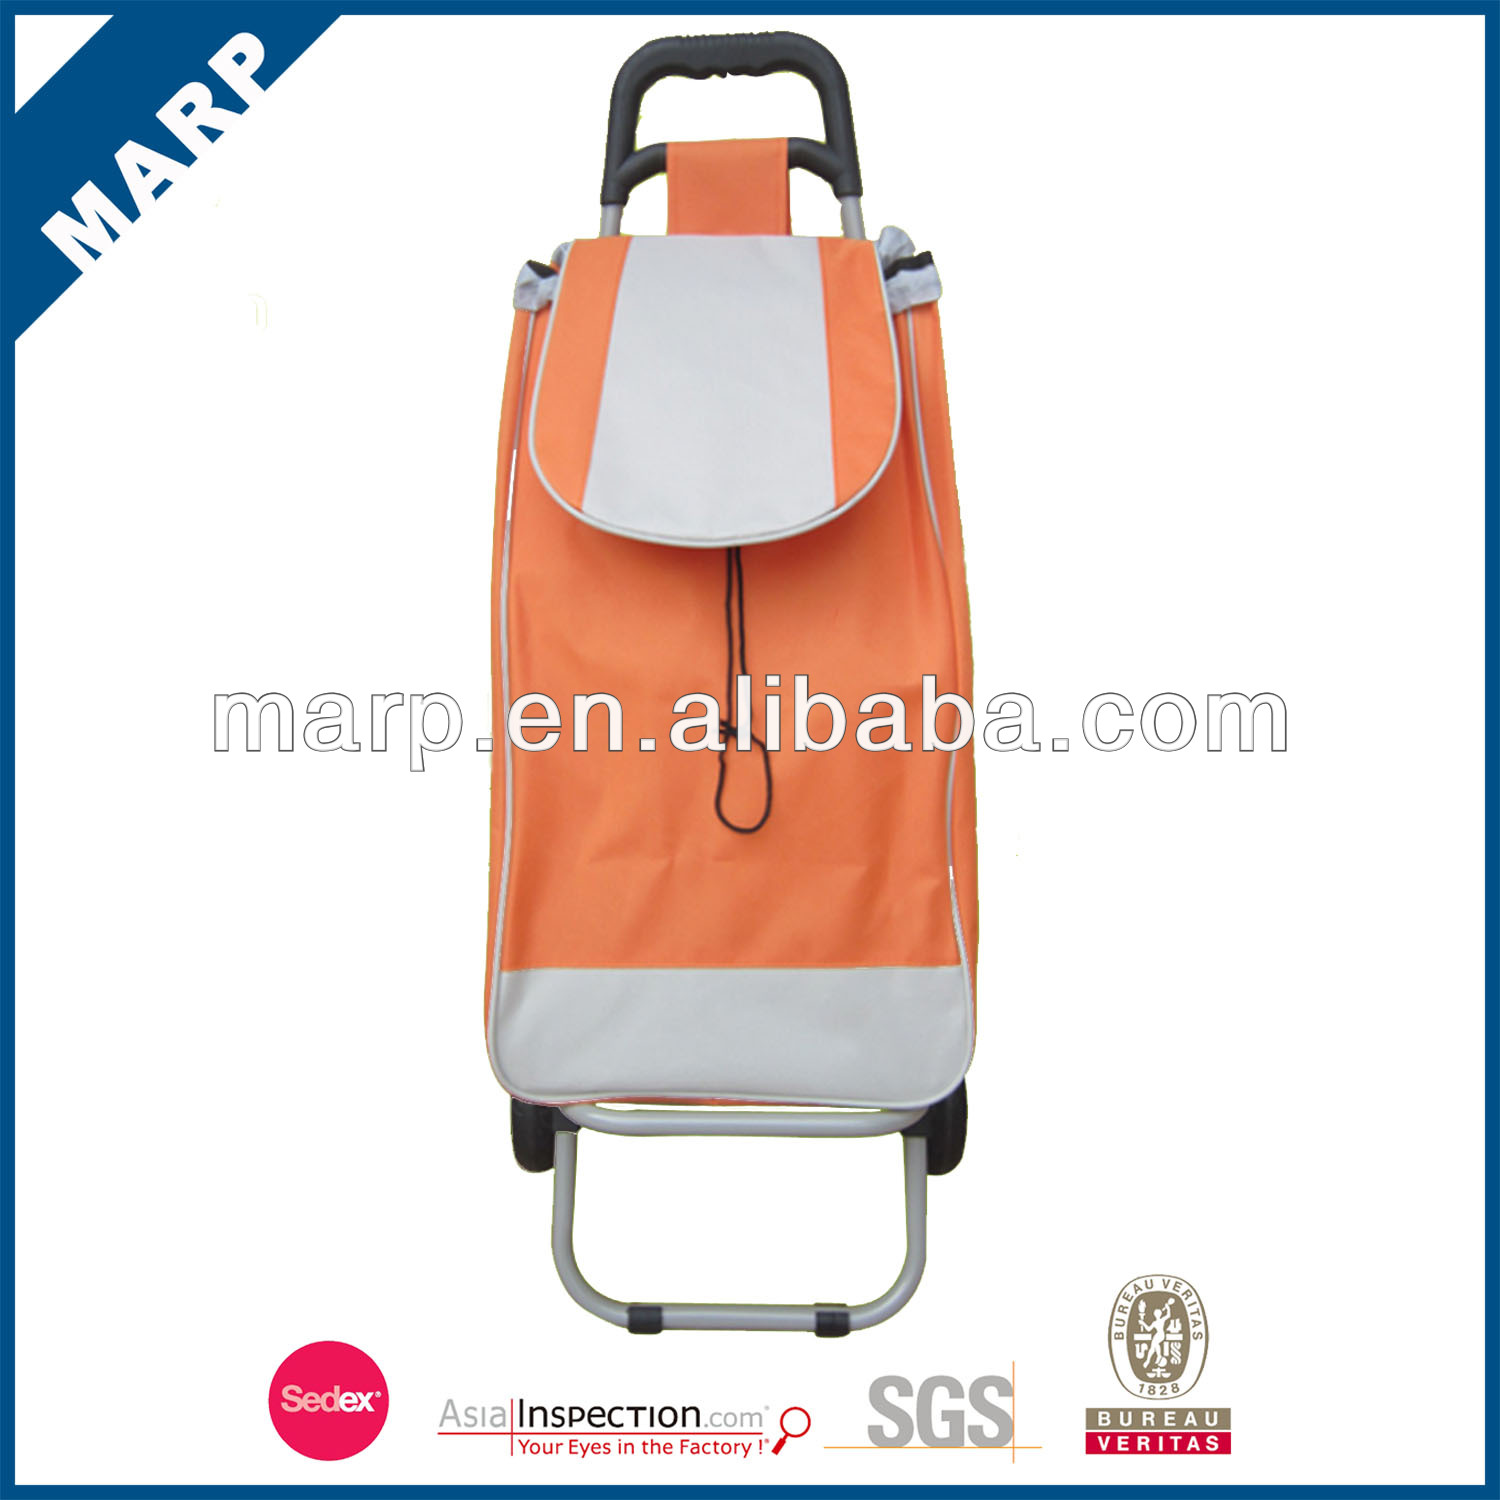 Portable orange trolley shopping bag